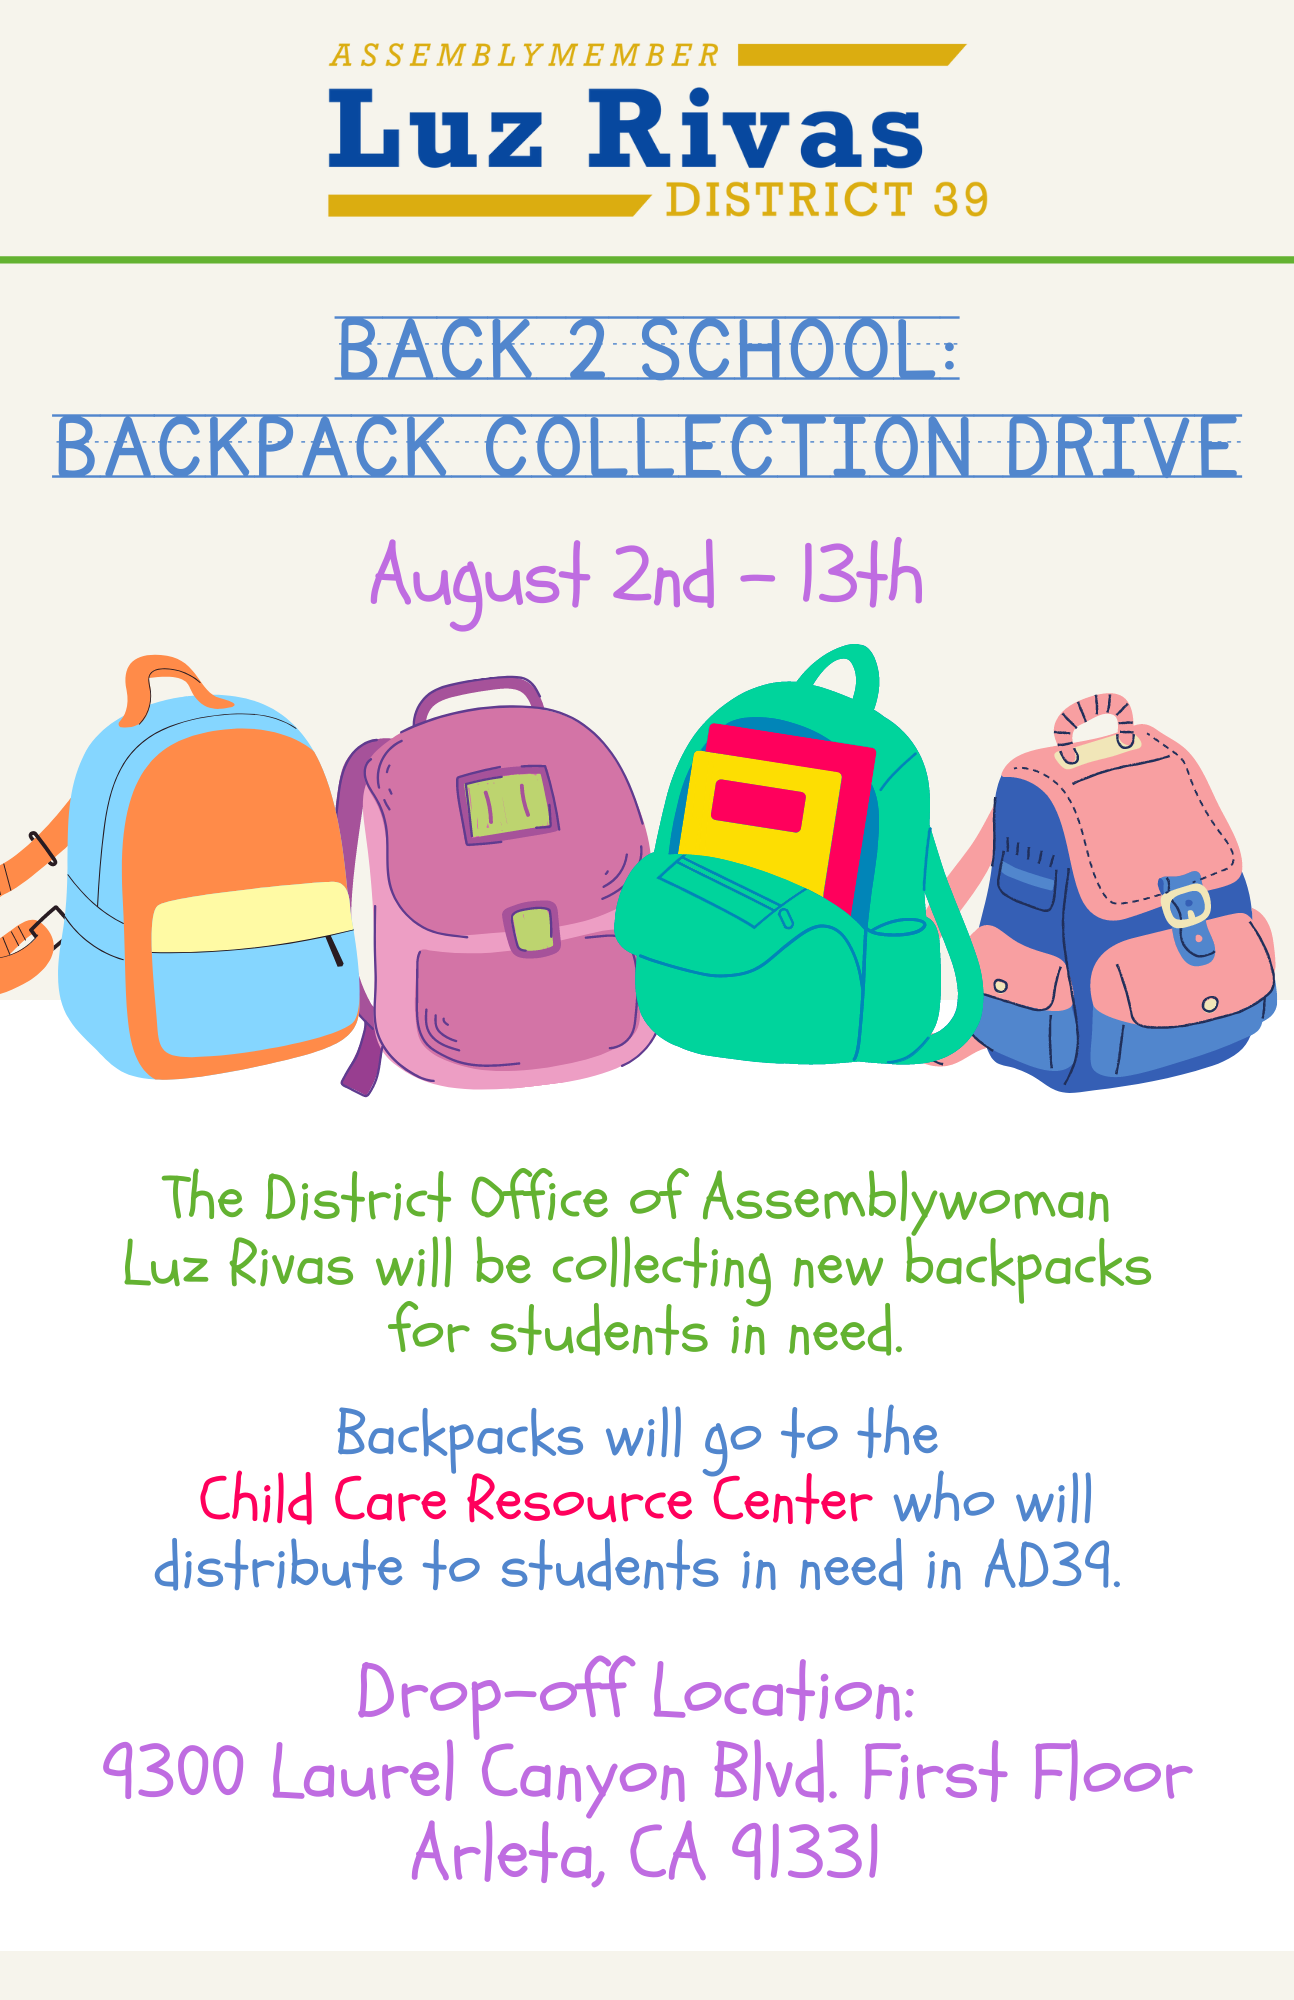 Backpack Collection Drive